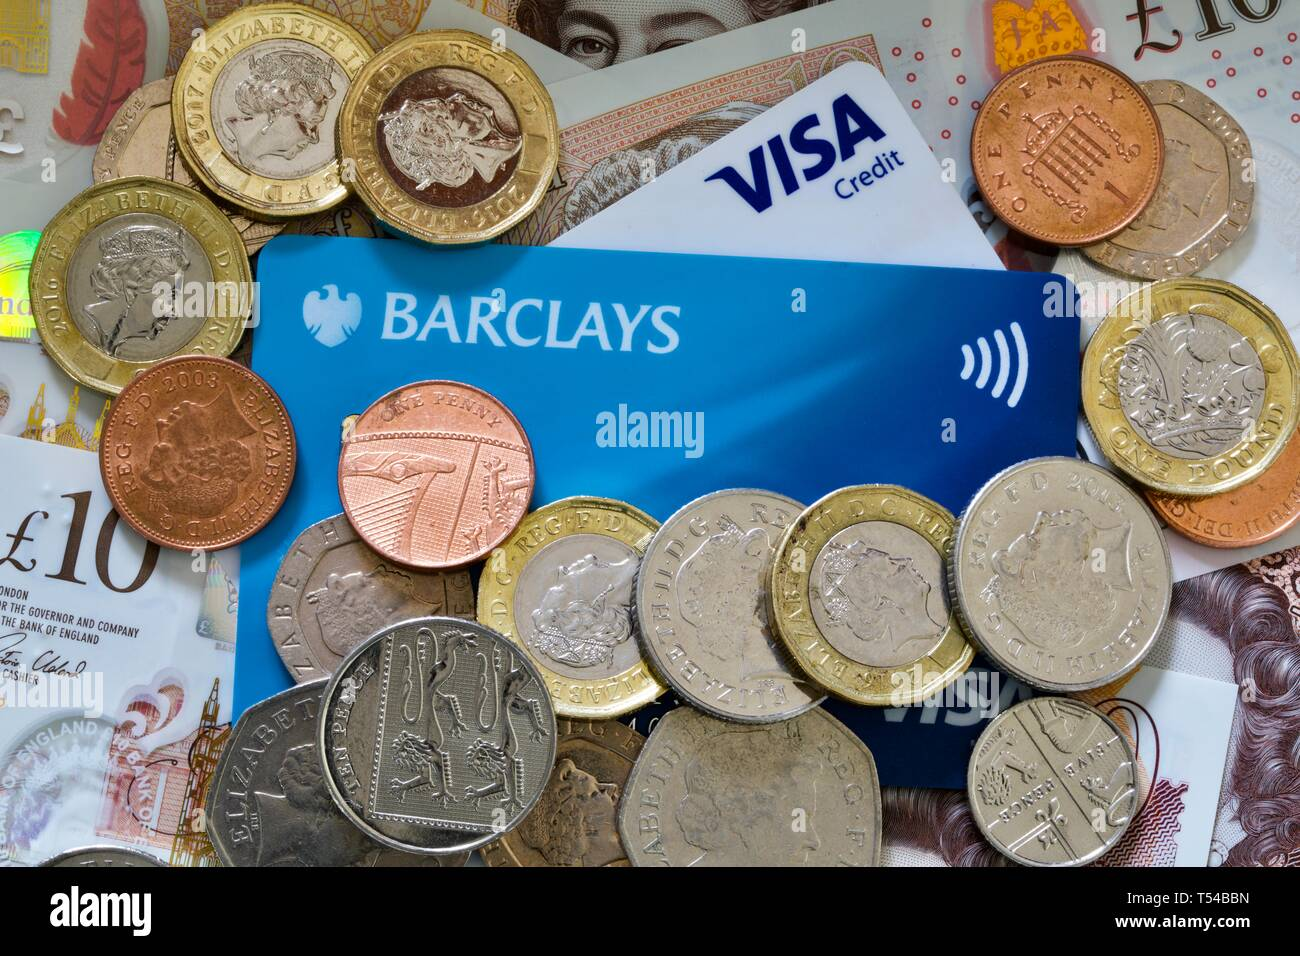 Money and Credit Cards - Stock Image